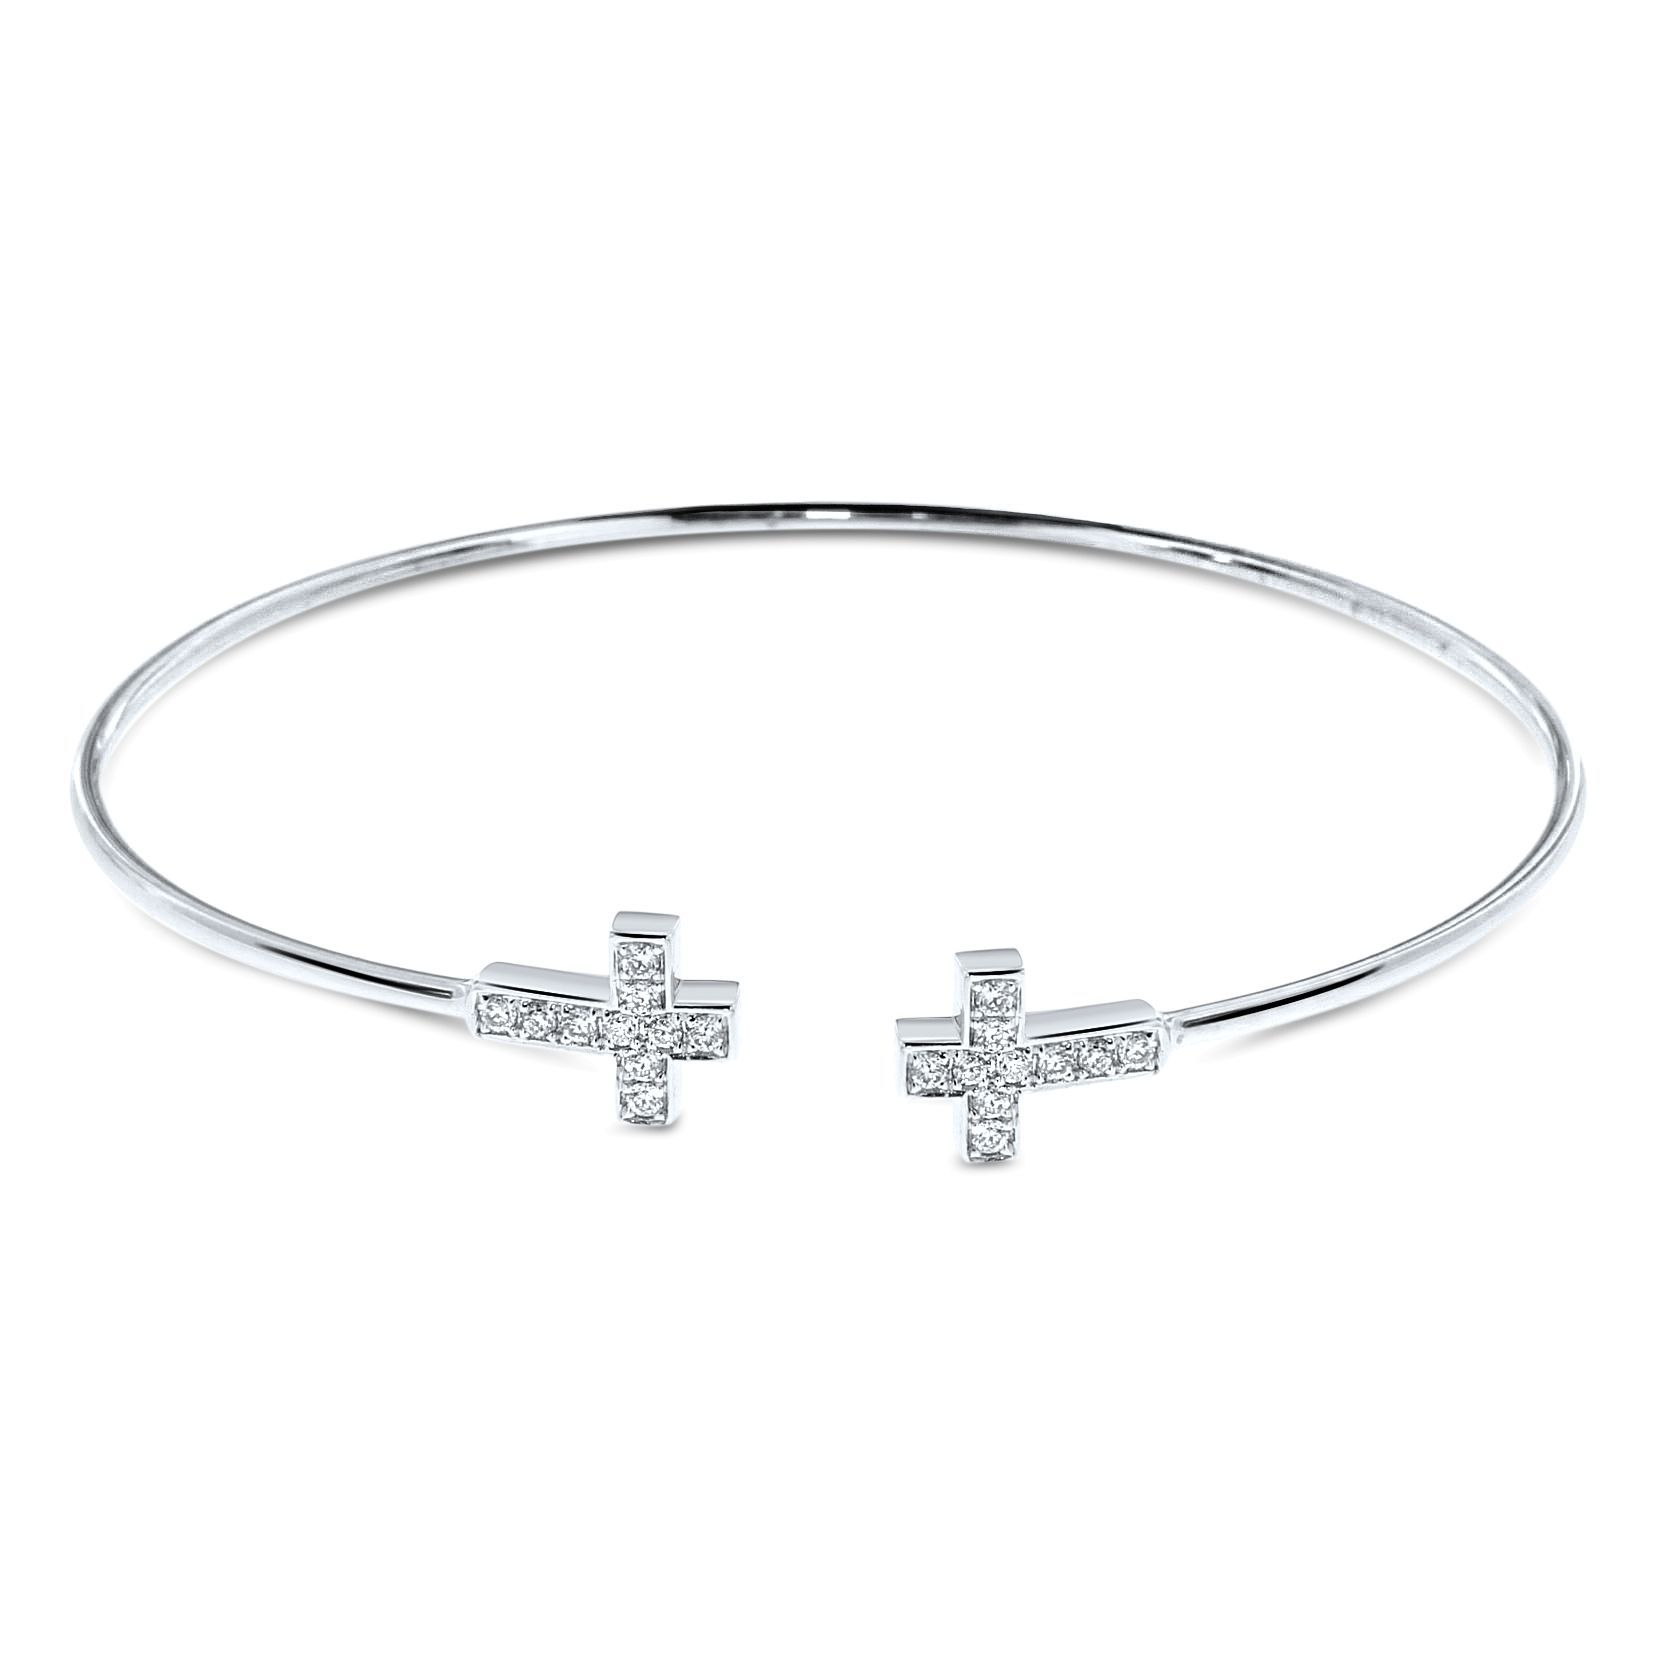 bangle do bangles bracelet cry layla cross s product criss cl francesca